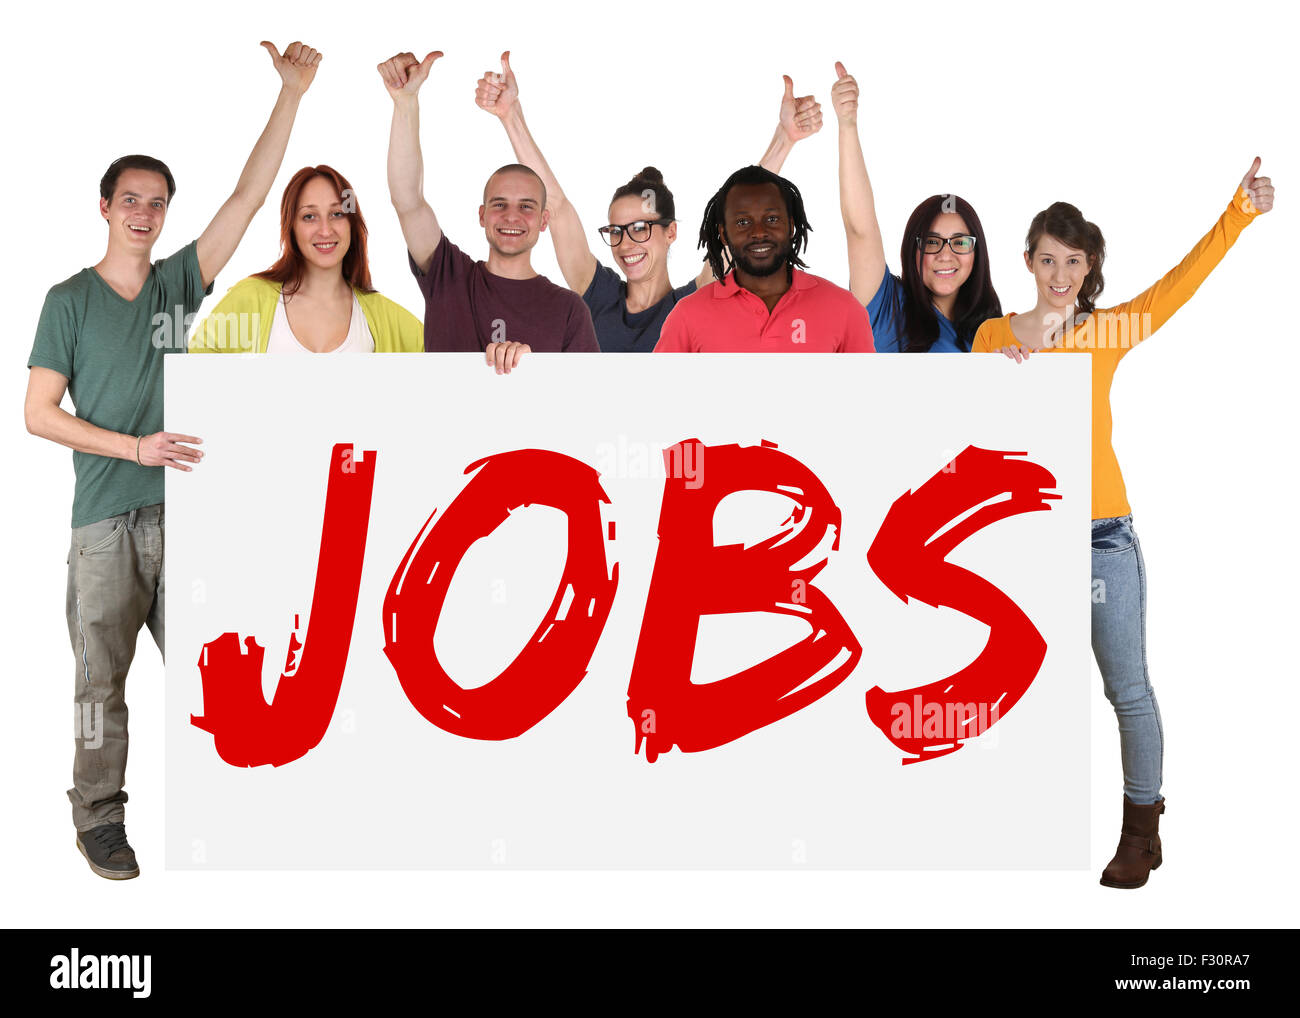 Jobs sign group of happy young multi ethnic people holding banner - Stock Image